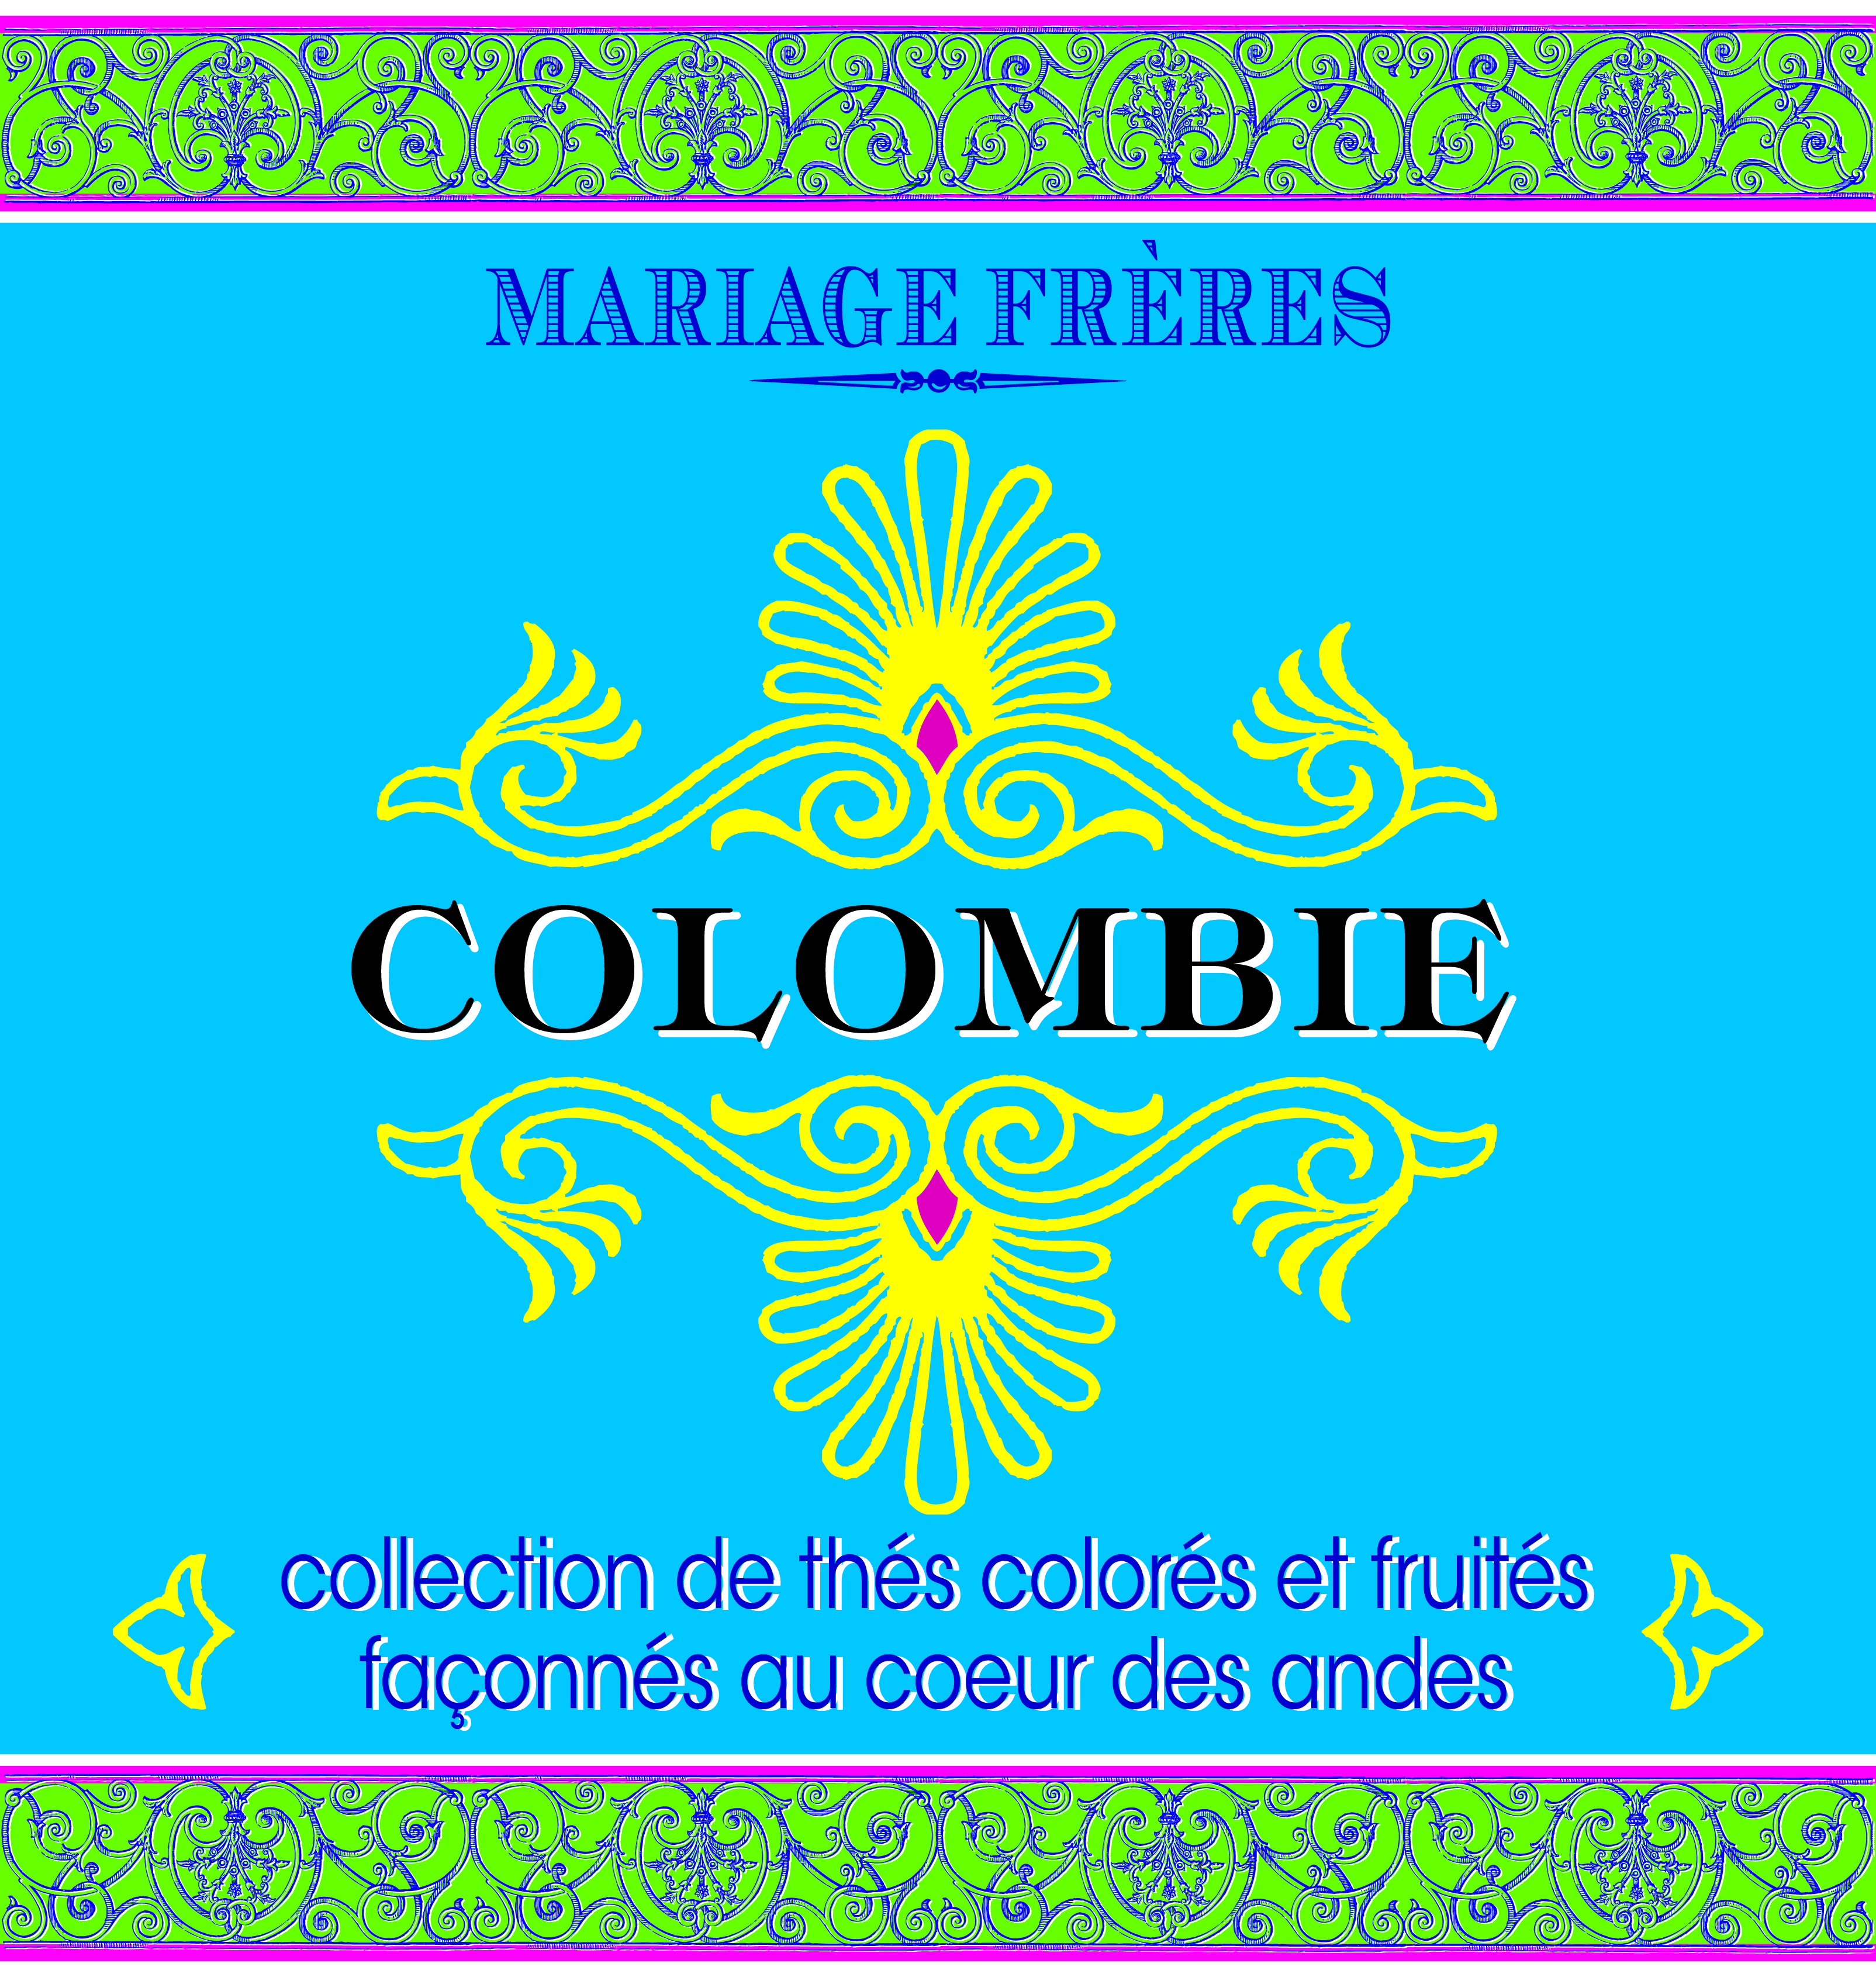 Thés de Colombie : collection of teas from Colombia, fashioned in the heart of the Andes